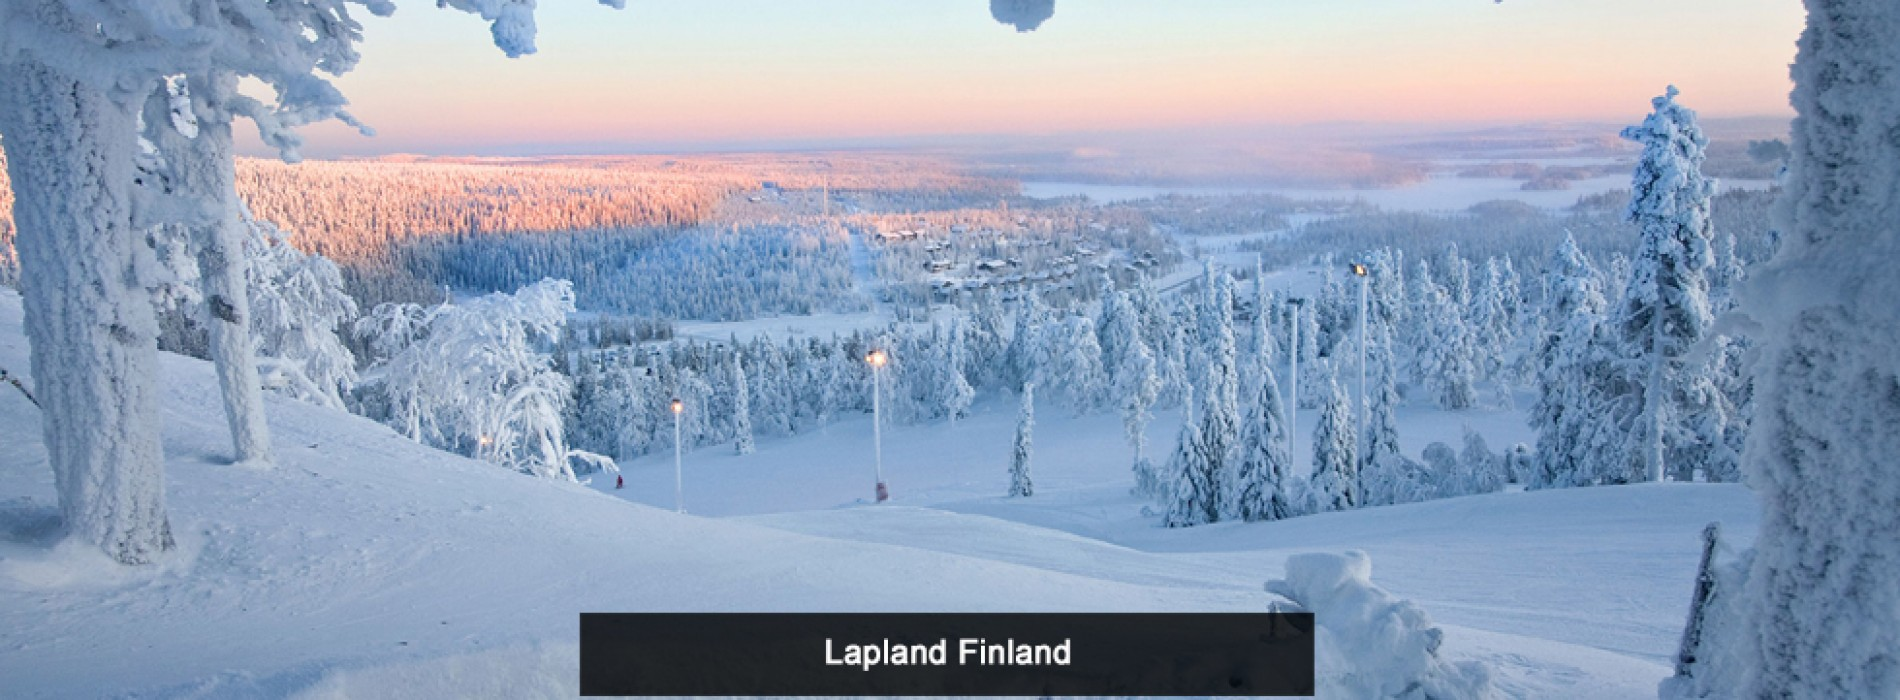 Finland: a glorious country of varied landscapes and stunning natural beauty